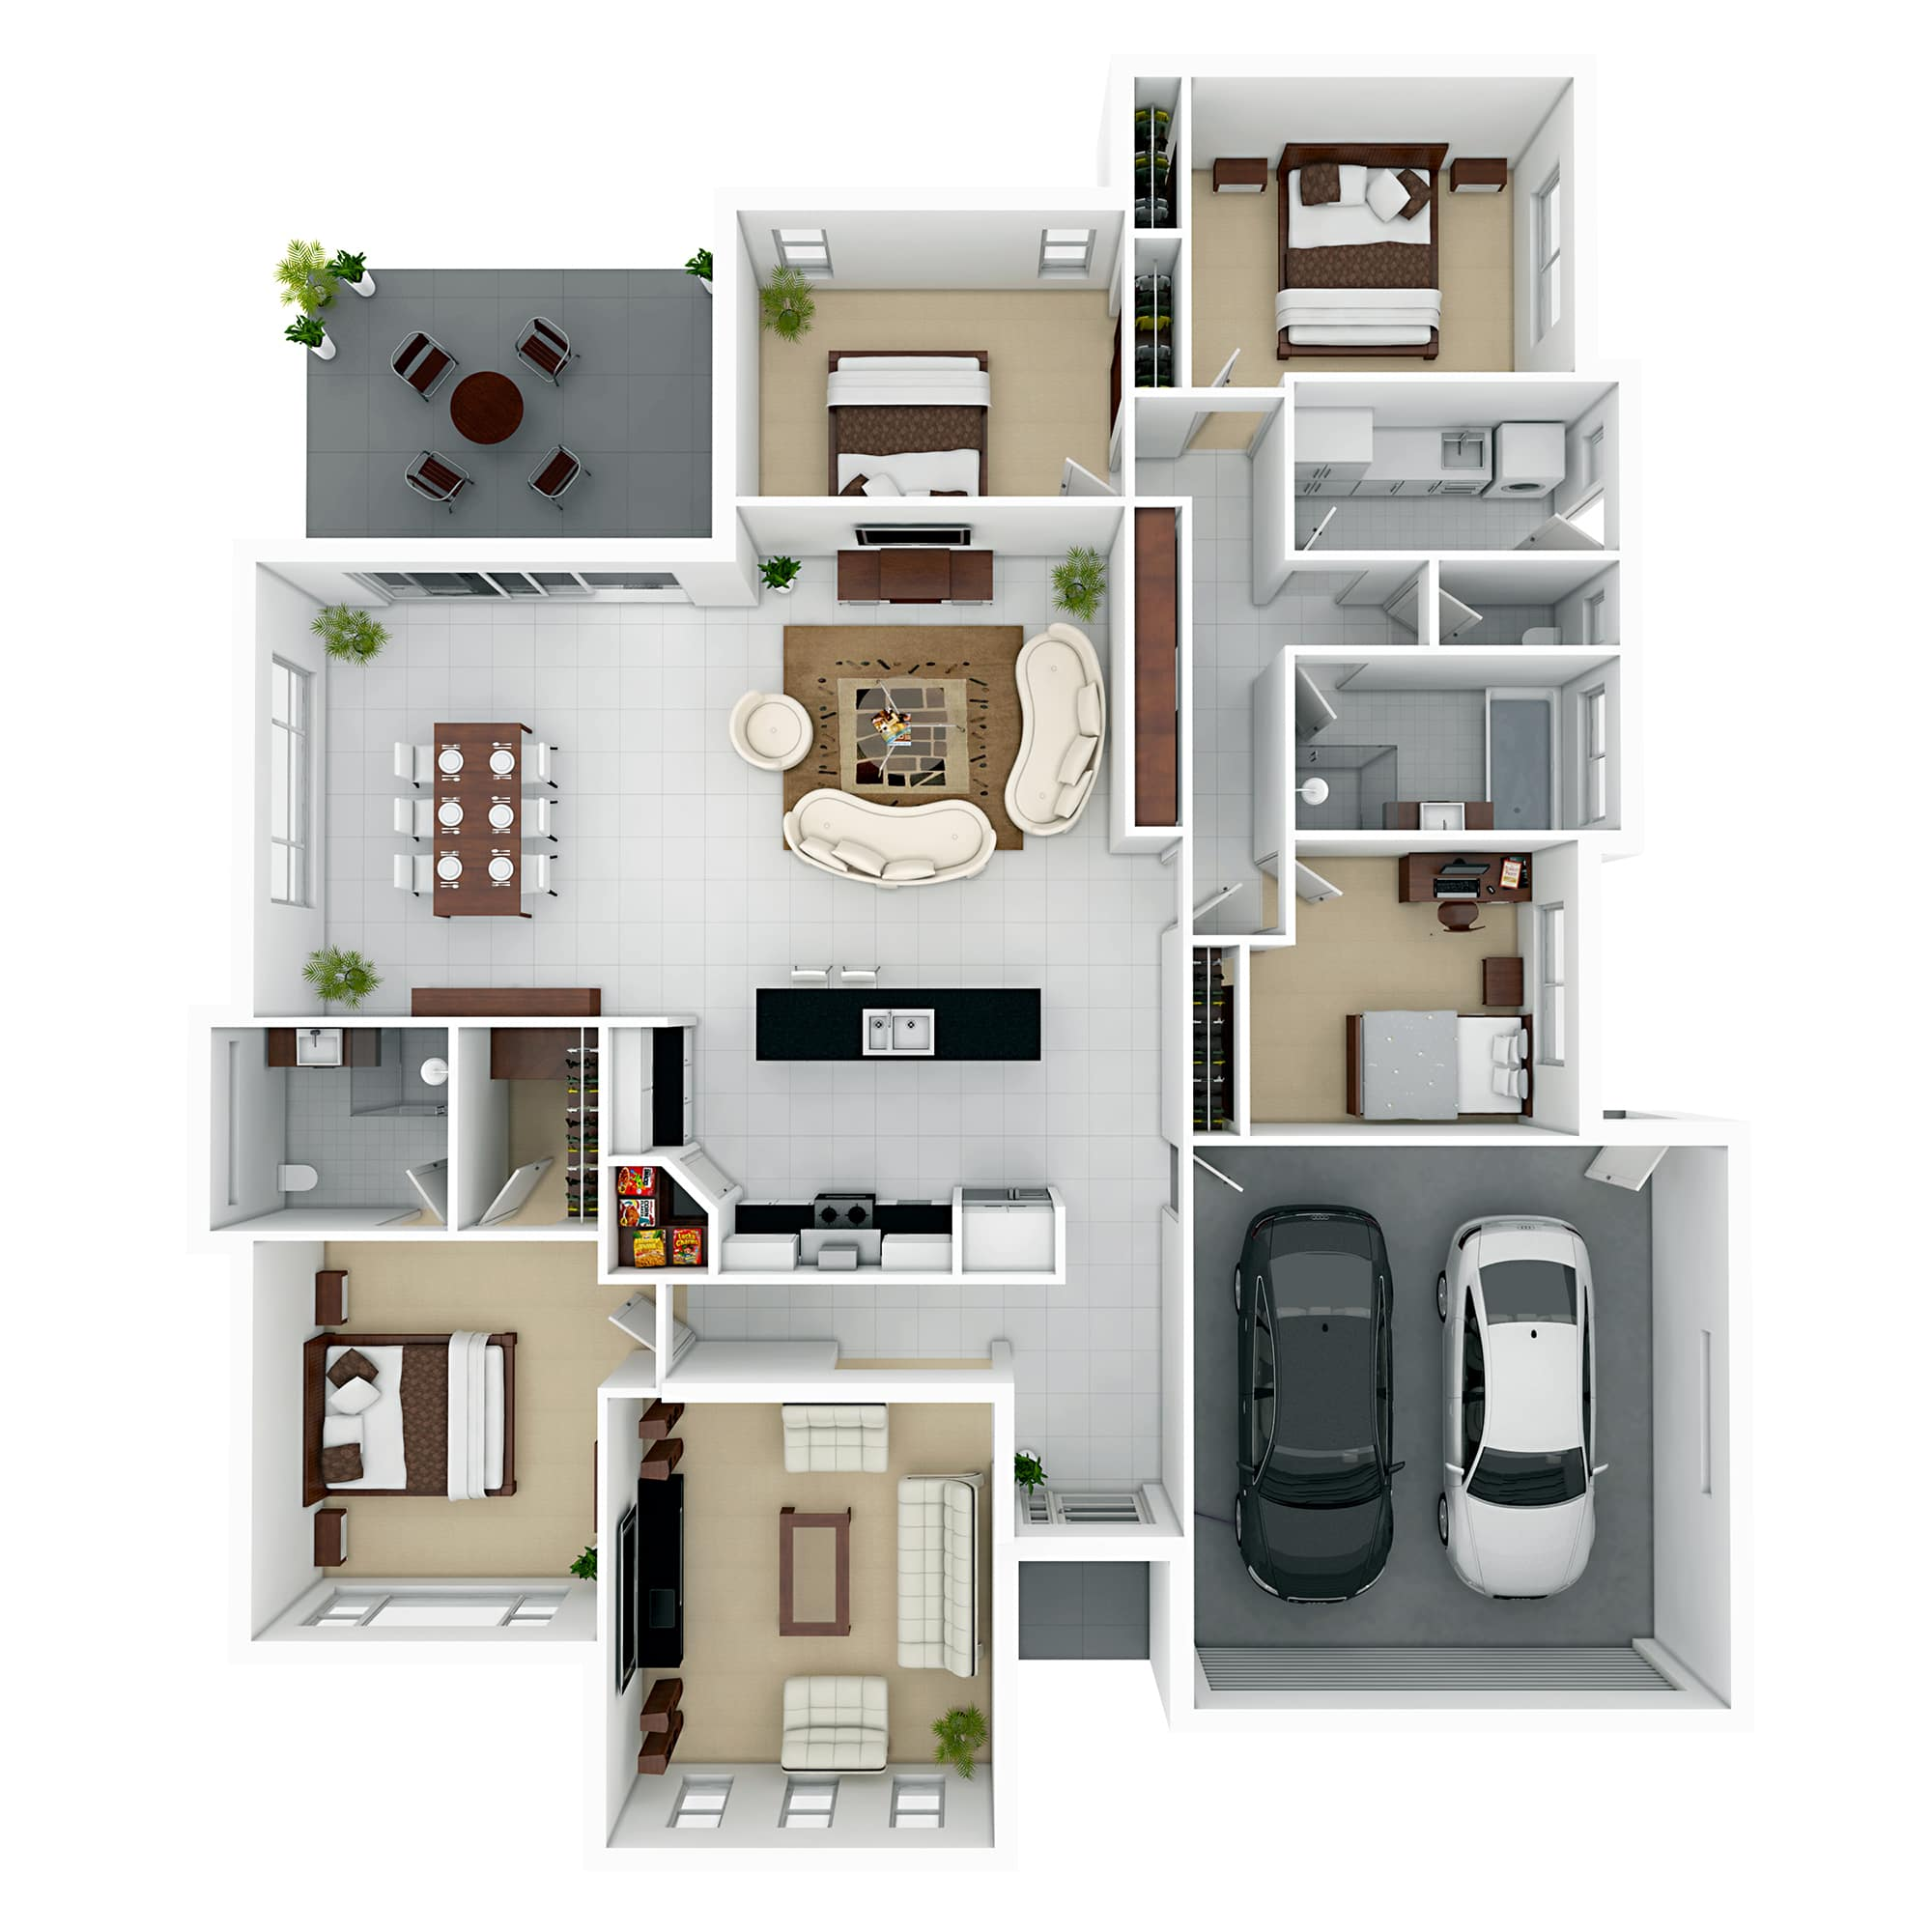 3d floor plans 3d design studio floor plan company Home plan 3d